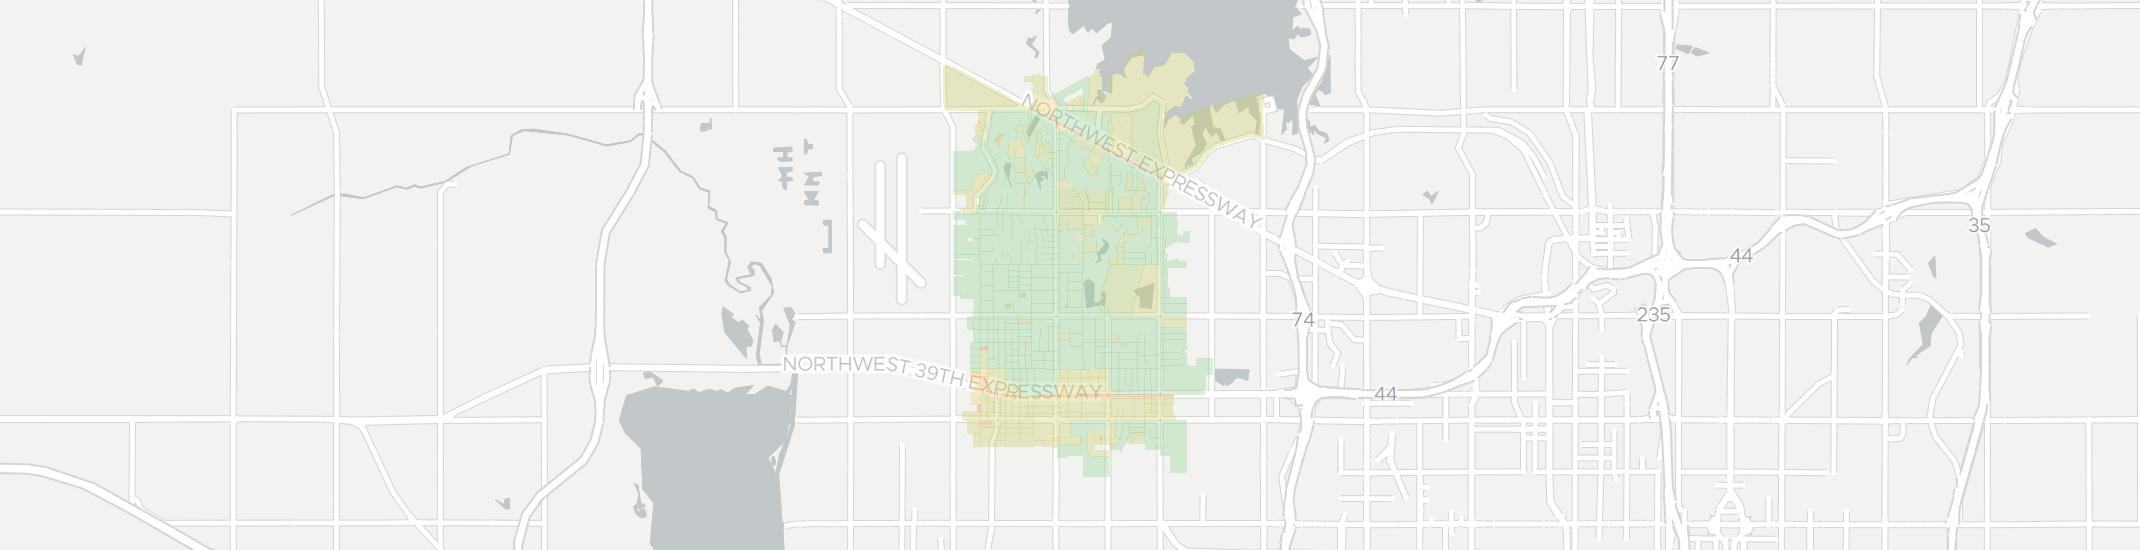 Warr Acres Internet Competition Map. Click for interactive map.